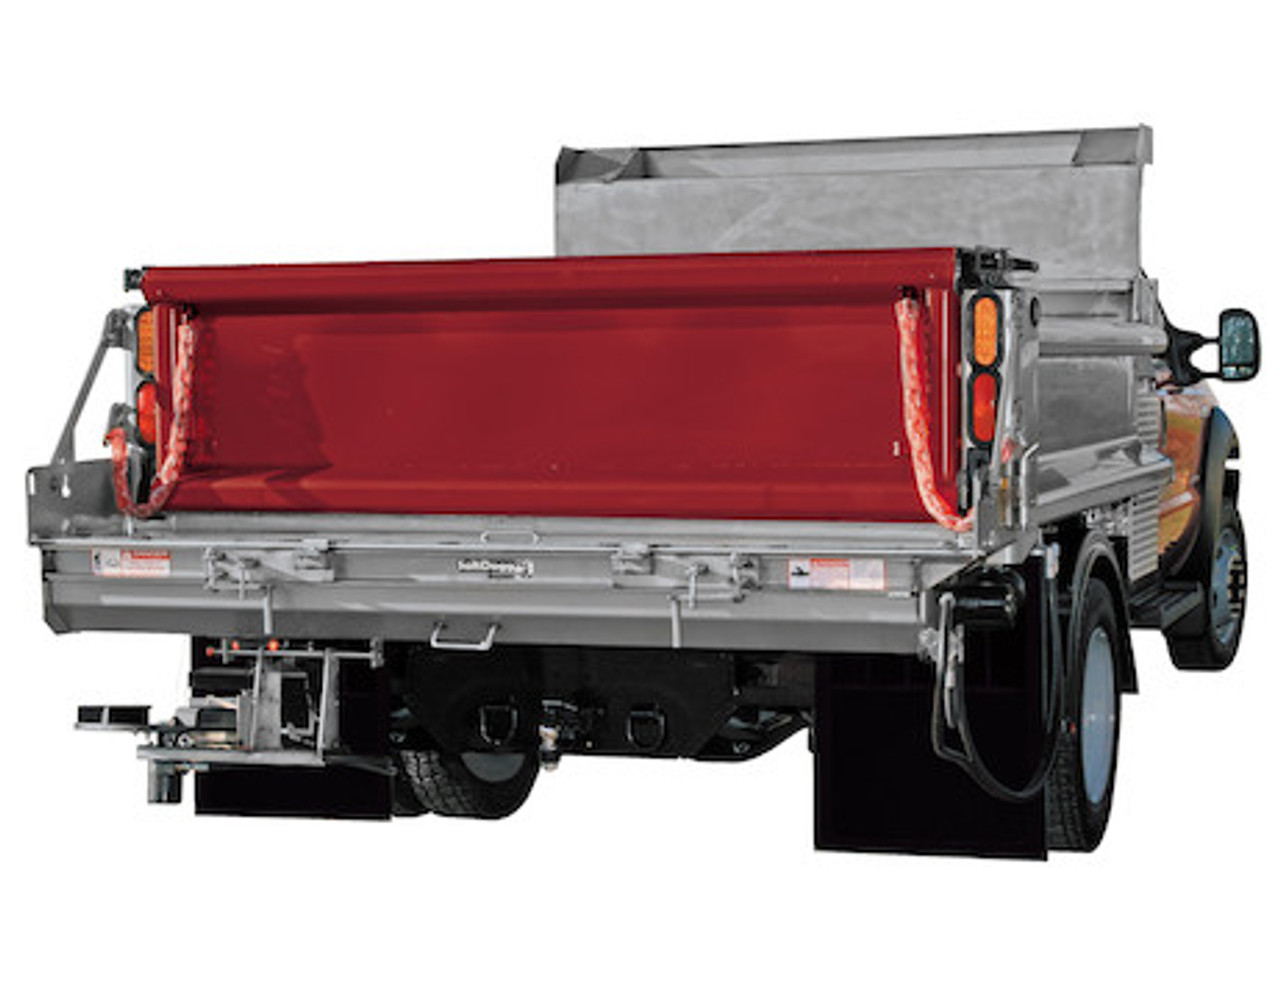 92427SSA BUYERS SALTDOGG HYDRAULIC UNDER TAILGATE SPREADER WITH EXTENDED END PLATES, DRIVER SIDE DISCHARGE, HARD FACED AUGER